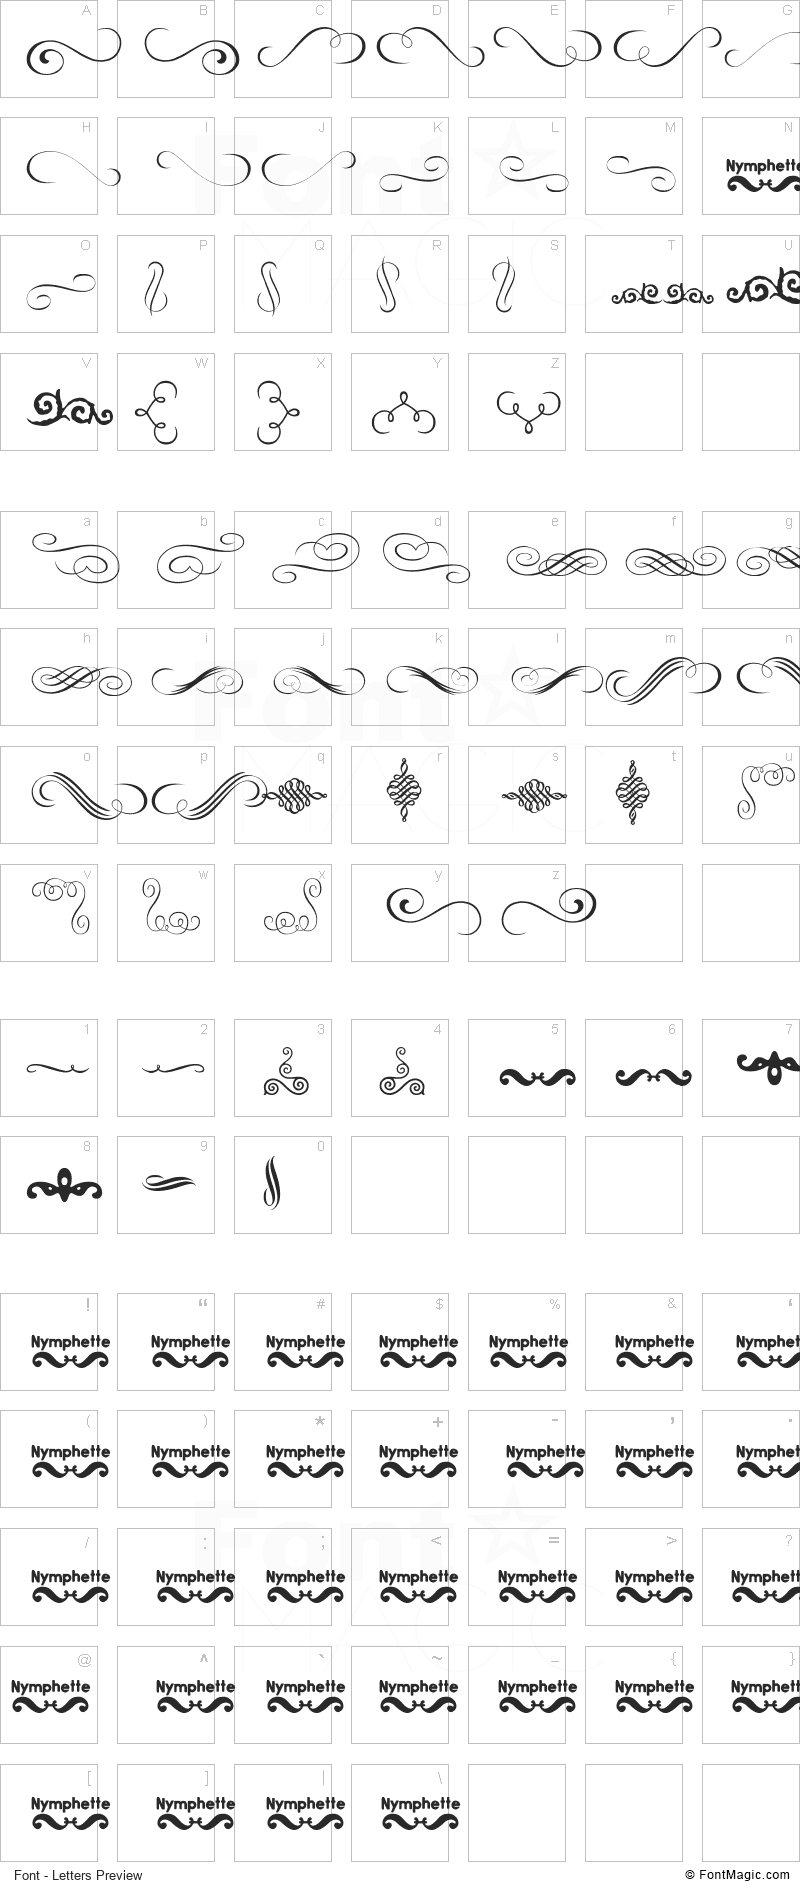 Nymphette Font - All Latters Preview Chart